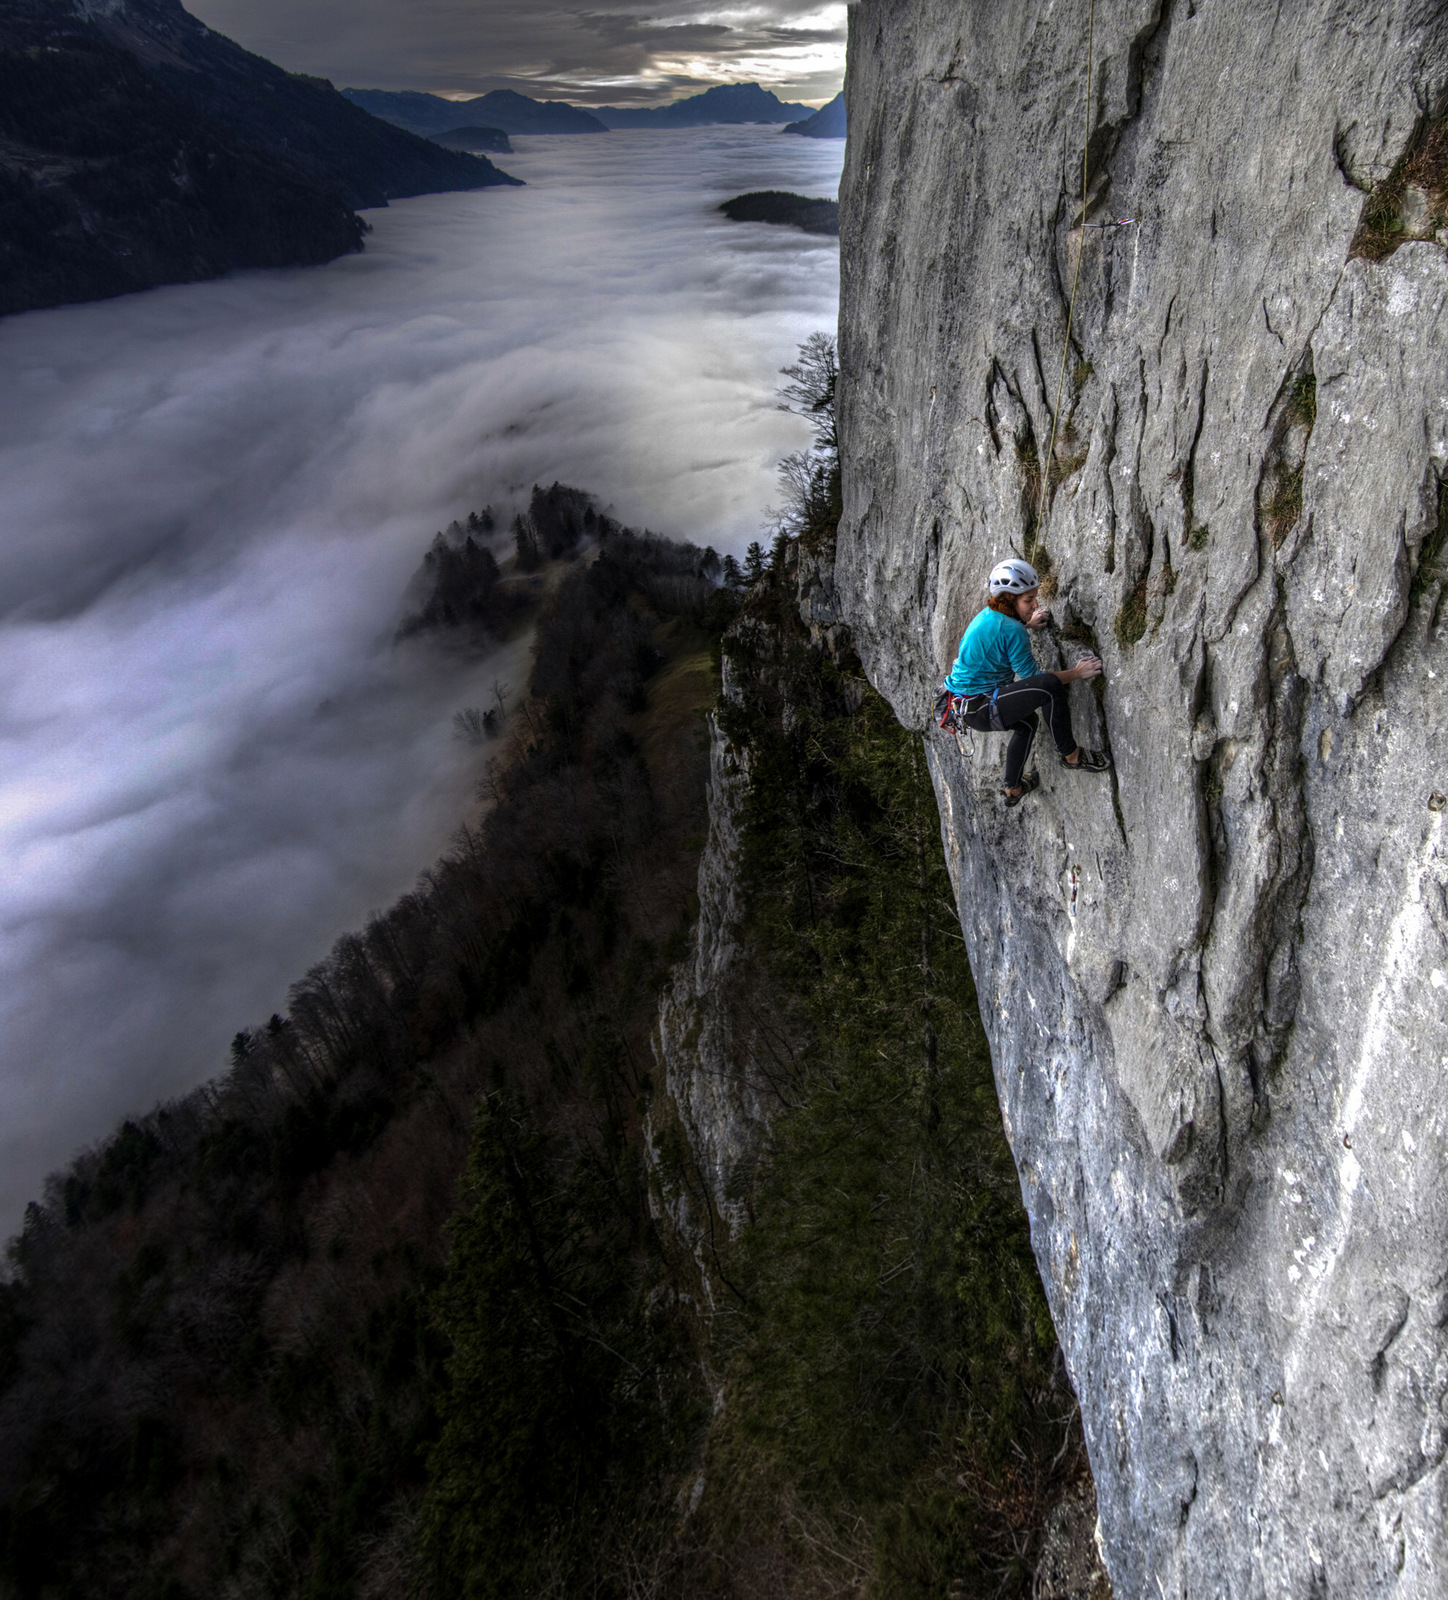 Climbing above the clouds at Fallenflue